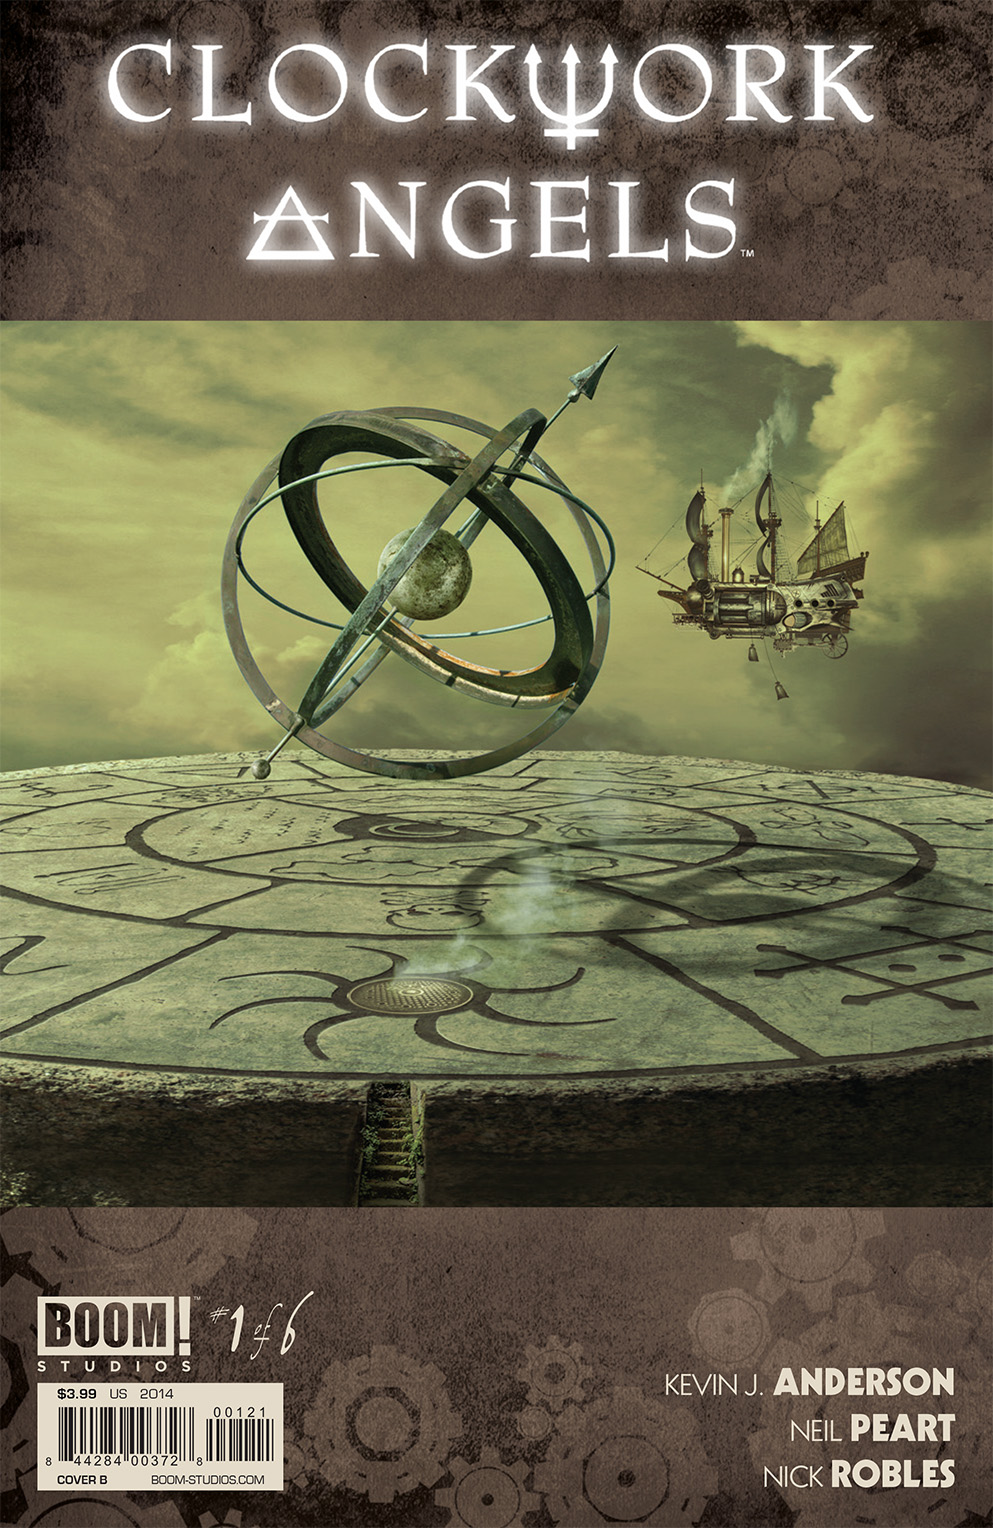 Clockwork Angels B